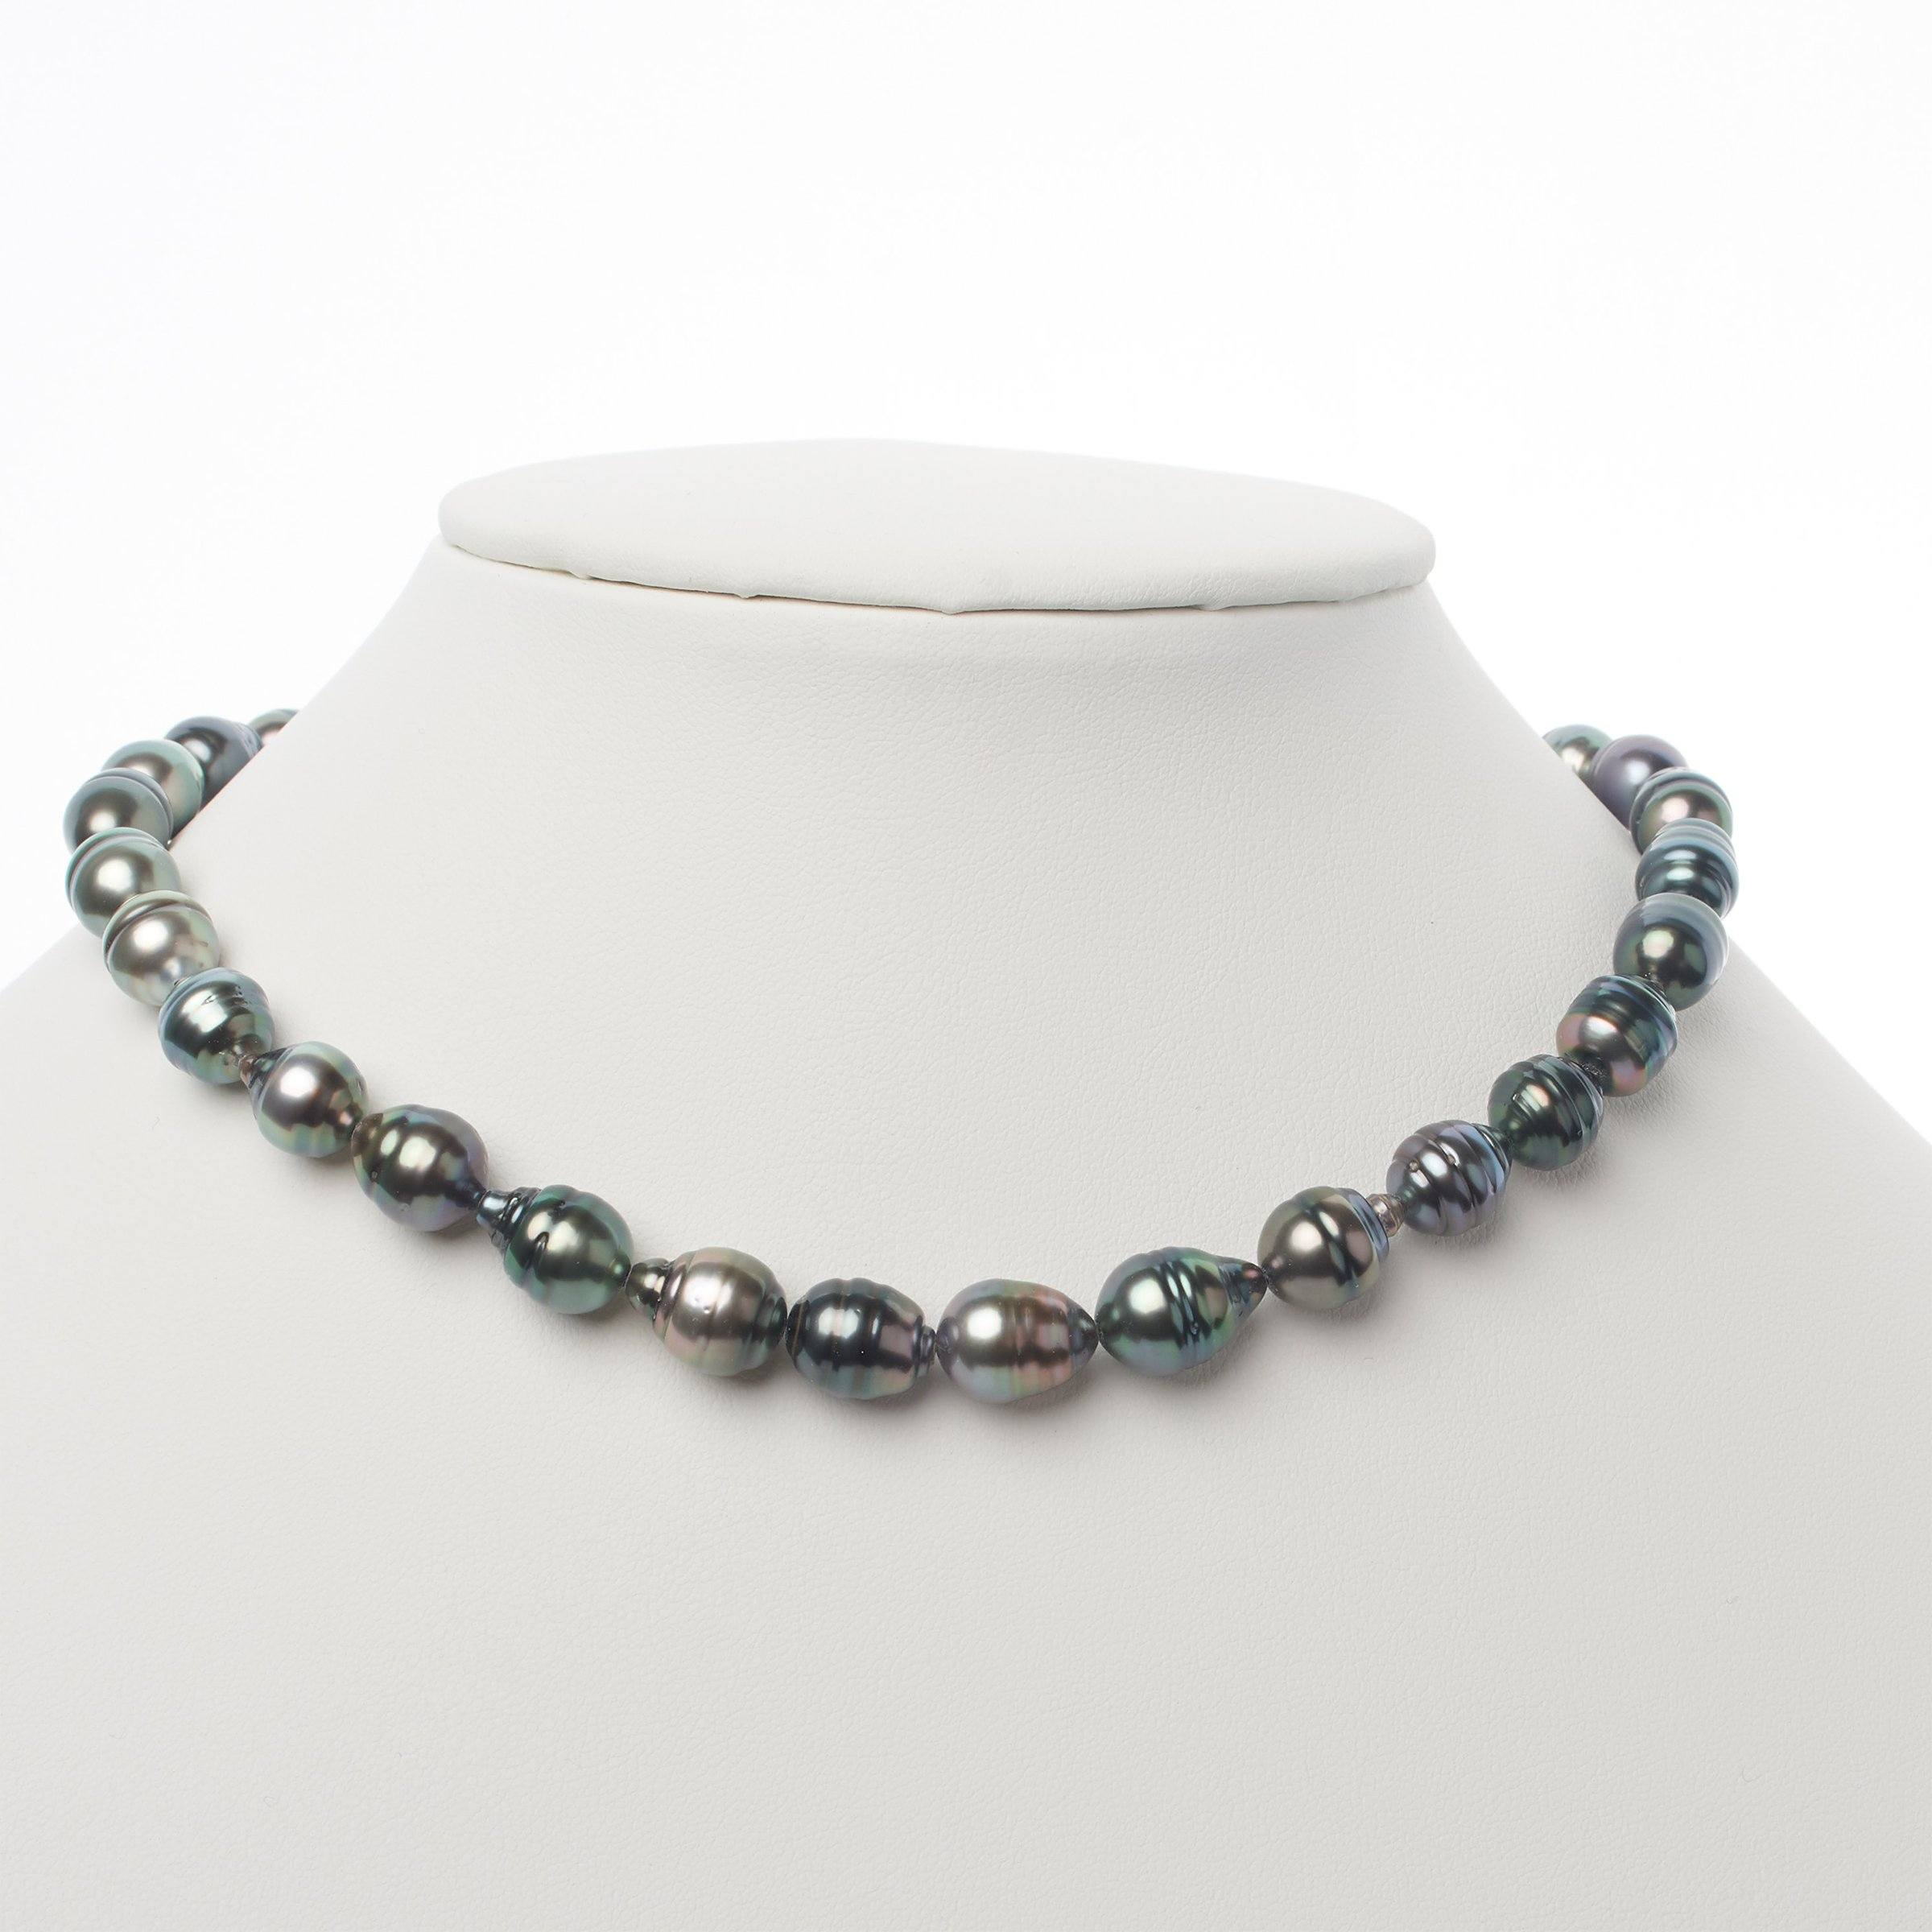 8.1-10.4 mm AA+/AAA Tahitian Baroque Pearl Necklace